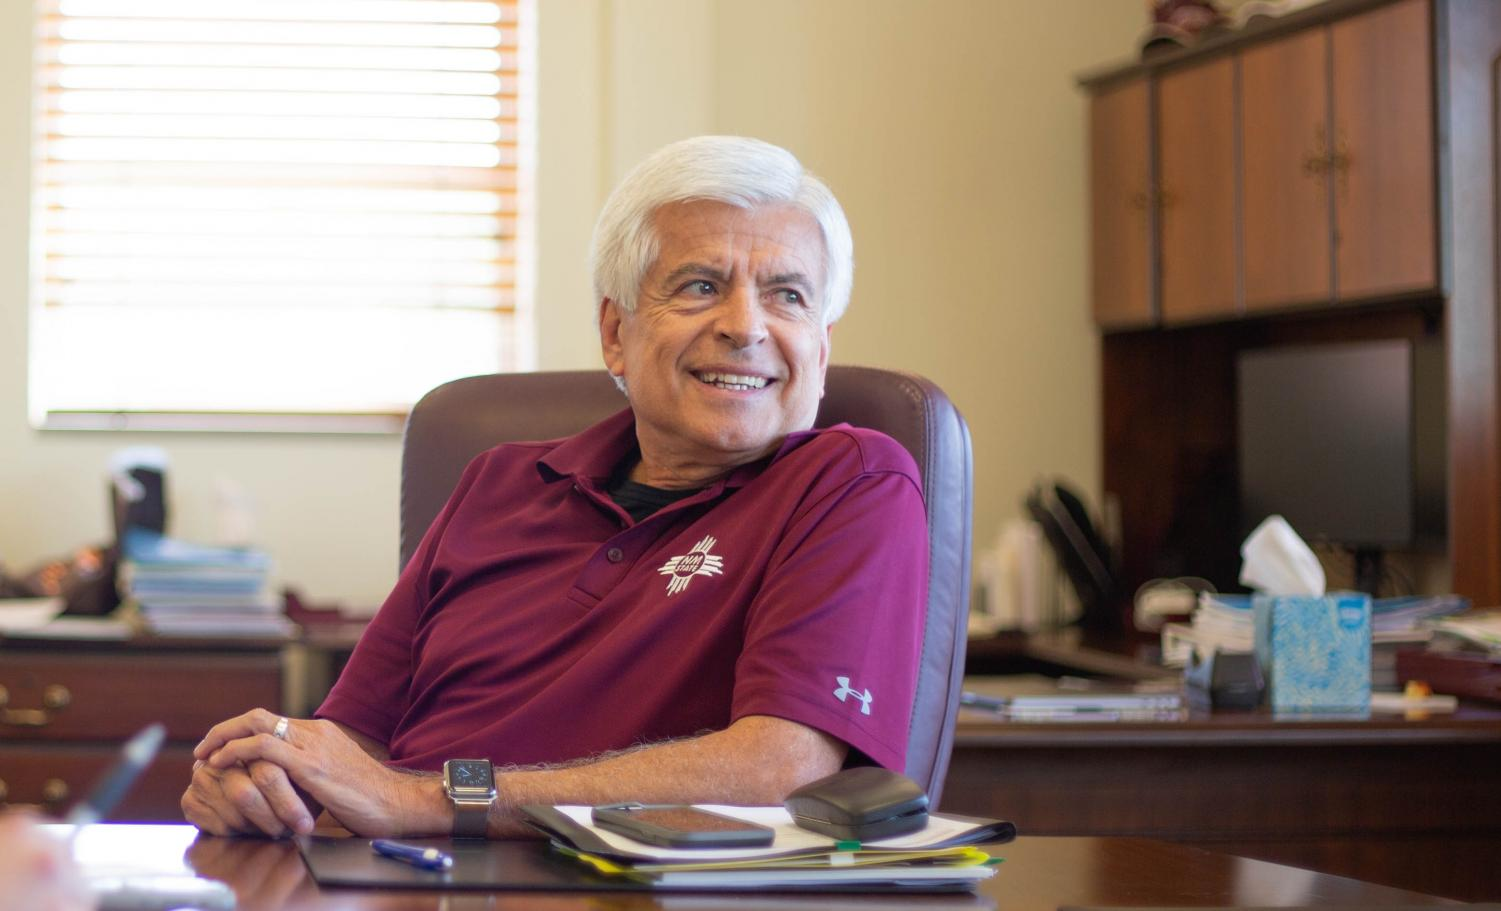 Chancellor Dan Arivzu acknowledges the difficulties of being an FBS football school and will attempt, along with Director of Athletics Mario Moccia, to lead NMSU into a FBS football conference in the near future.